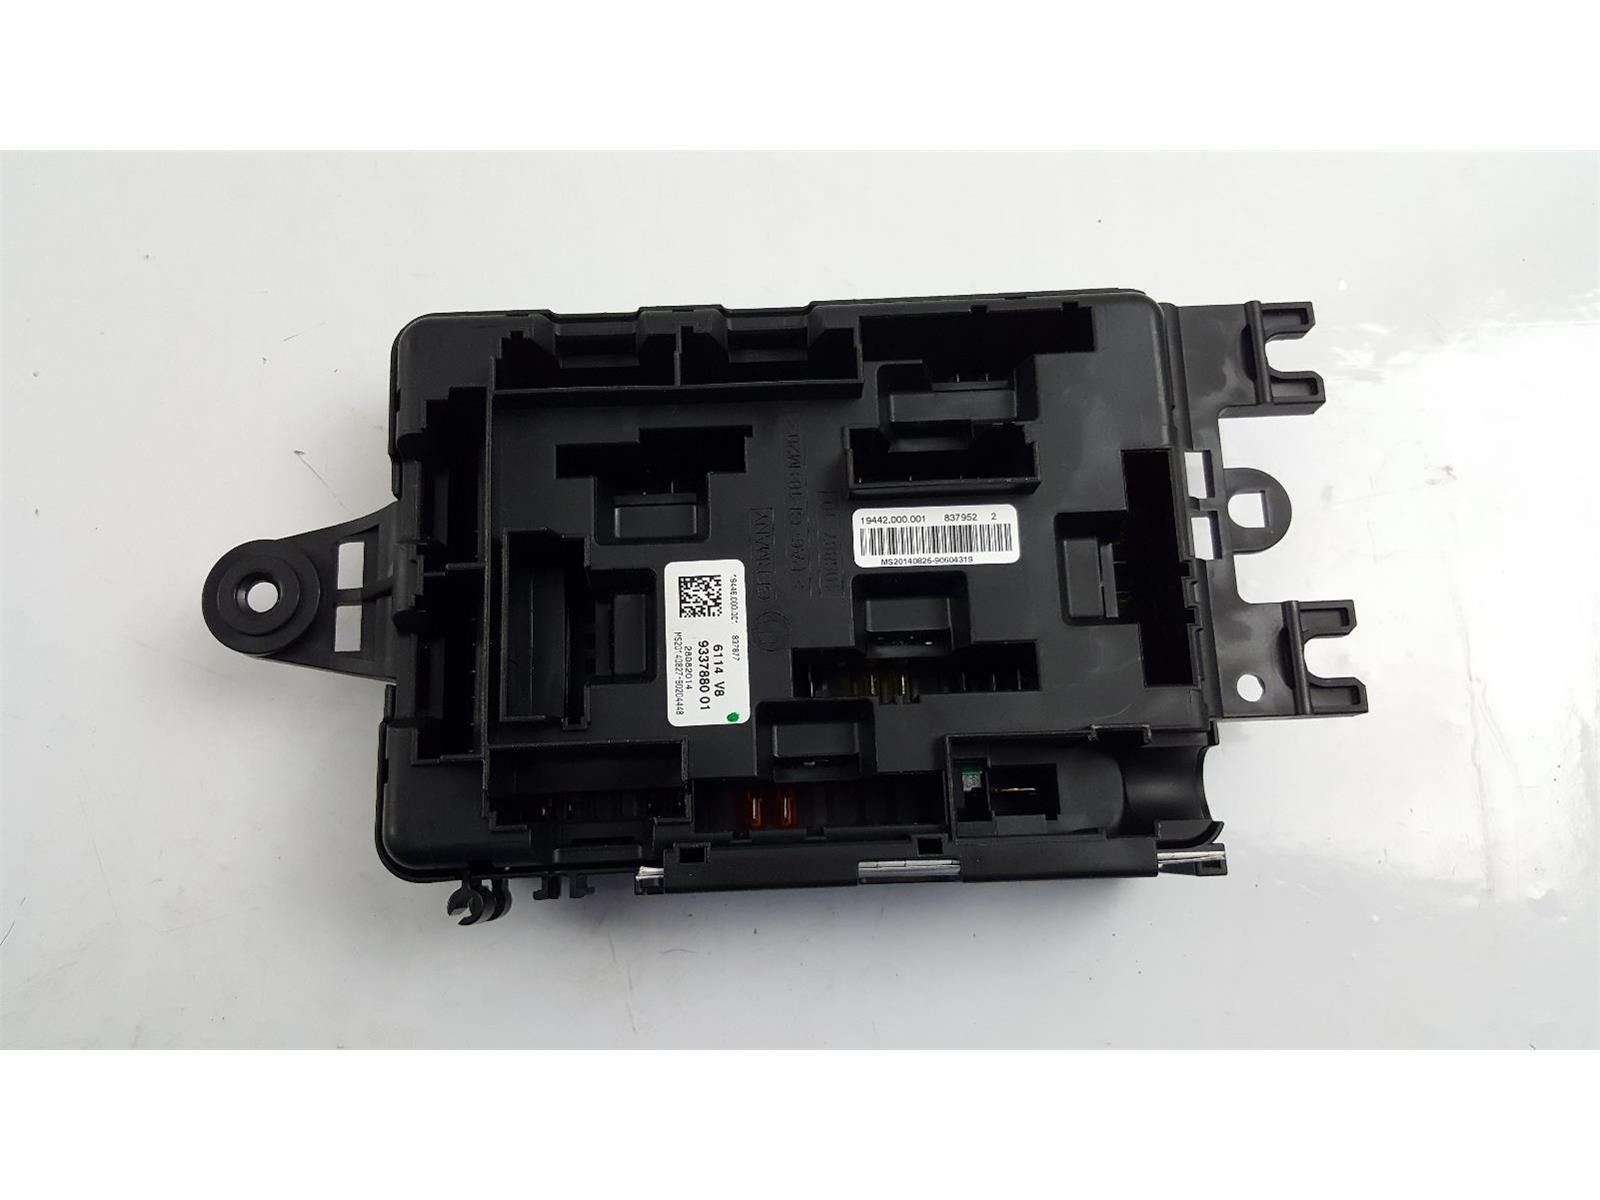 hight resolution of  2014 f31 bmw 3 series 320d fuse box 9337884 01